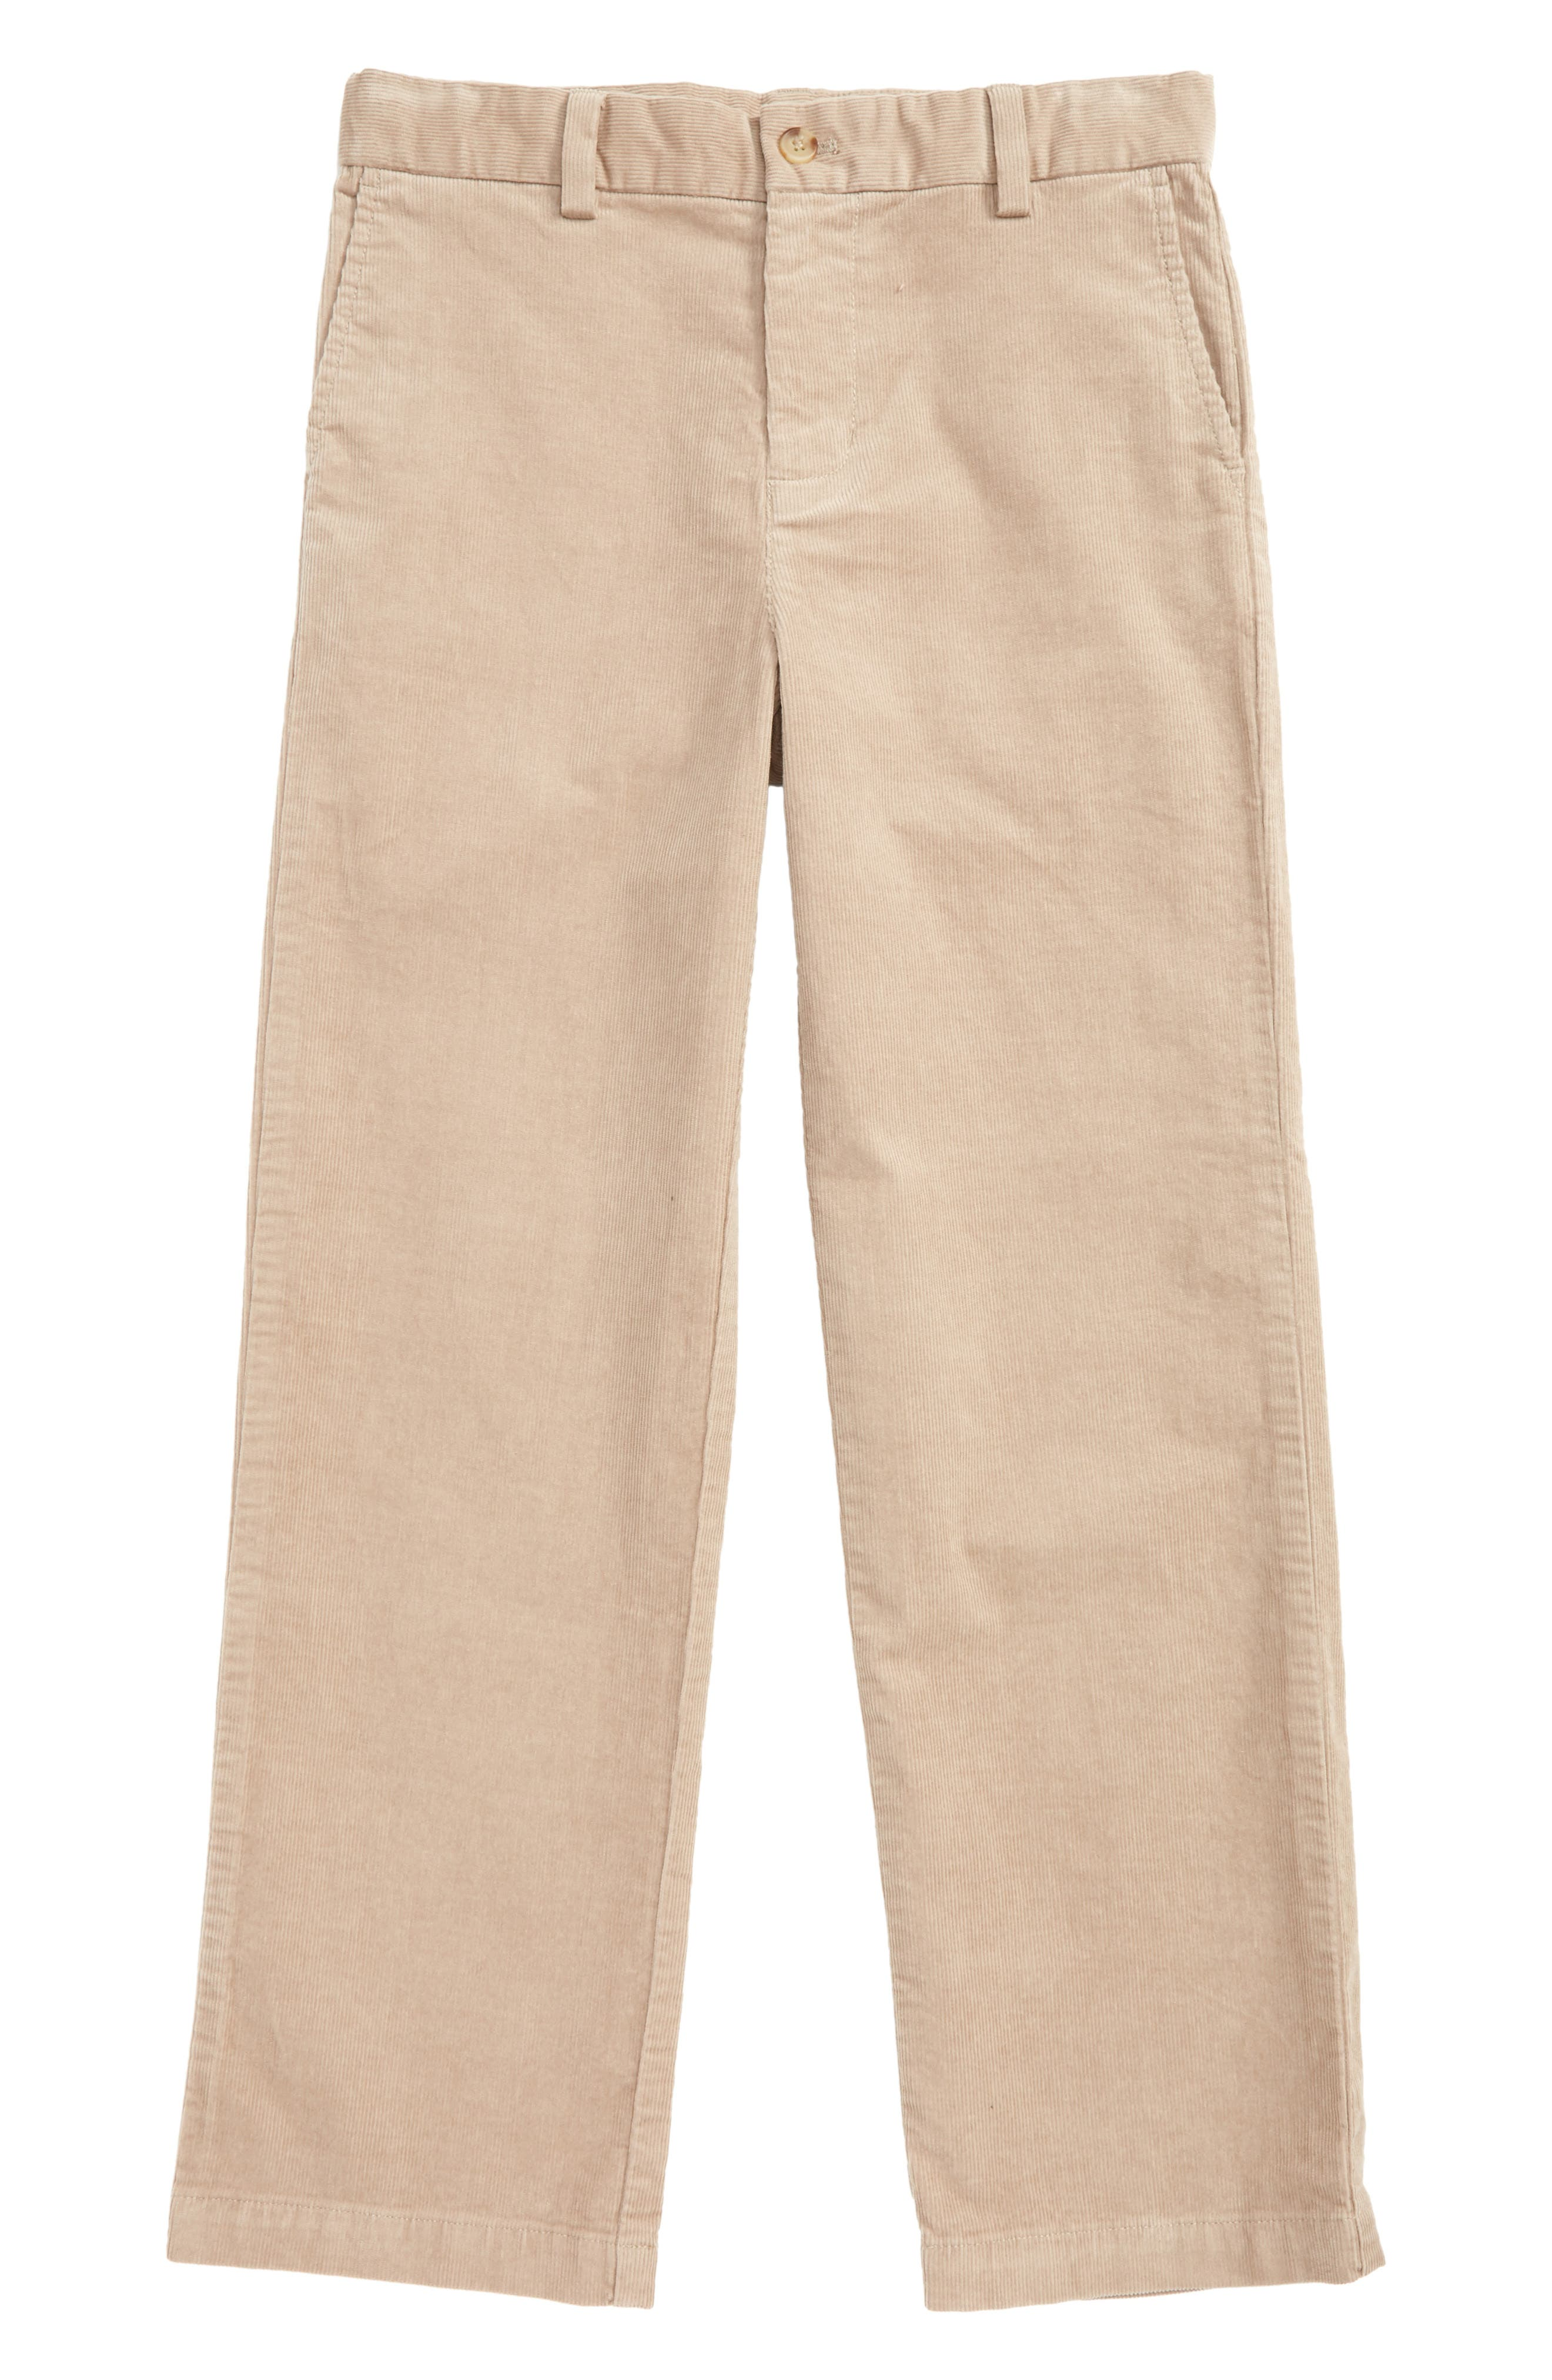 Breaker Corduroy Pants,                             Main thumbnail 1, color,